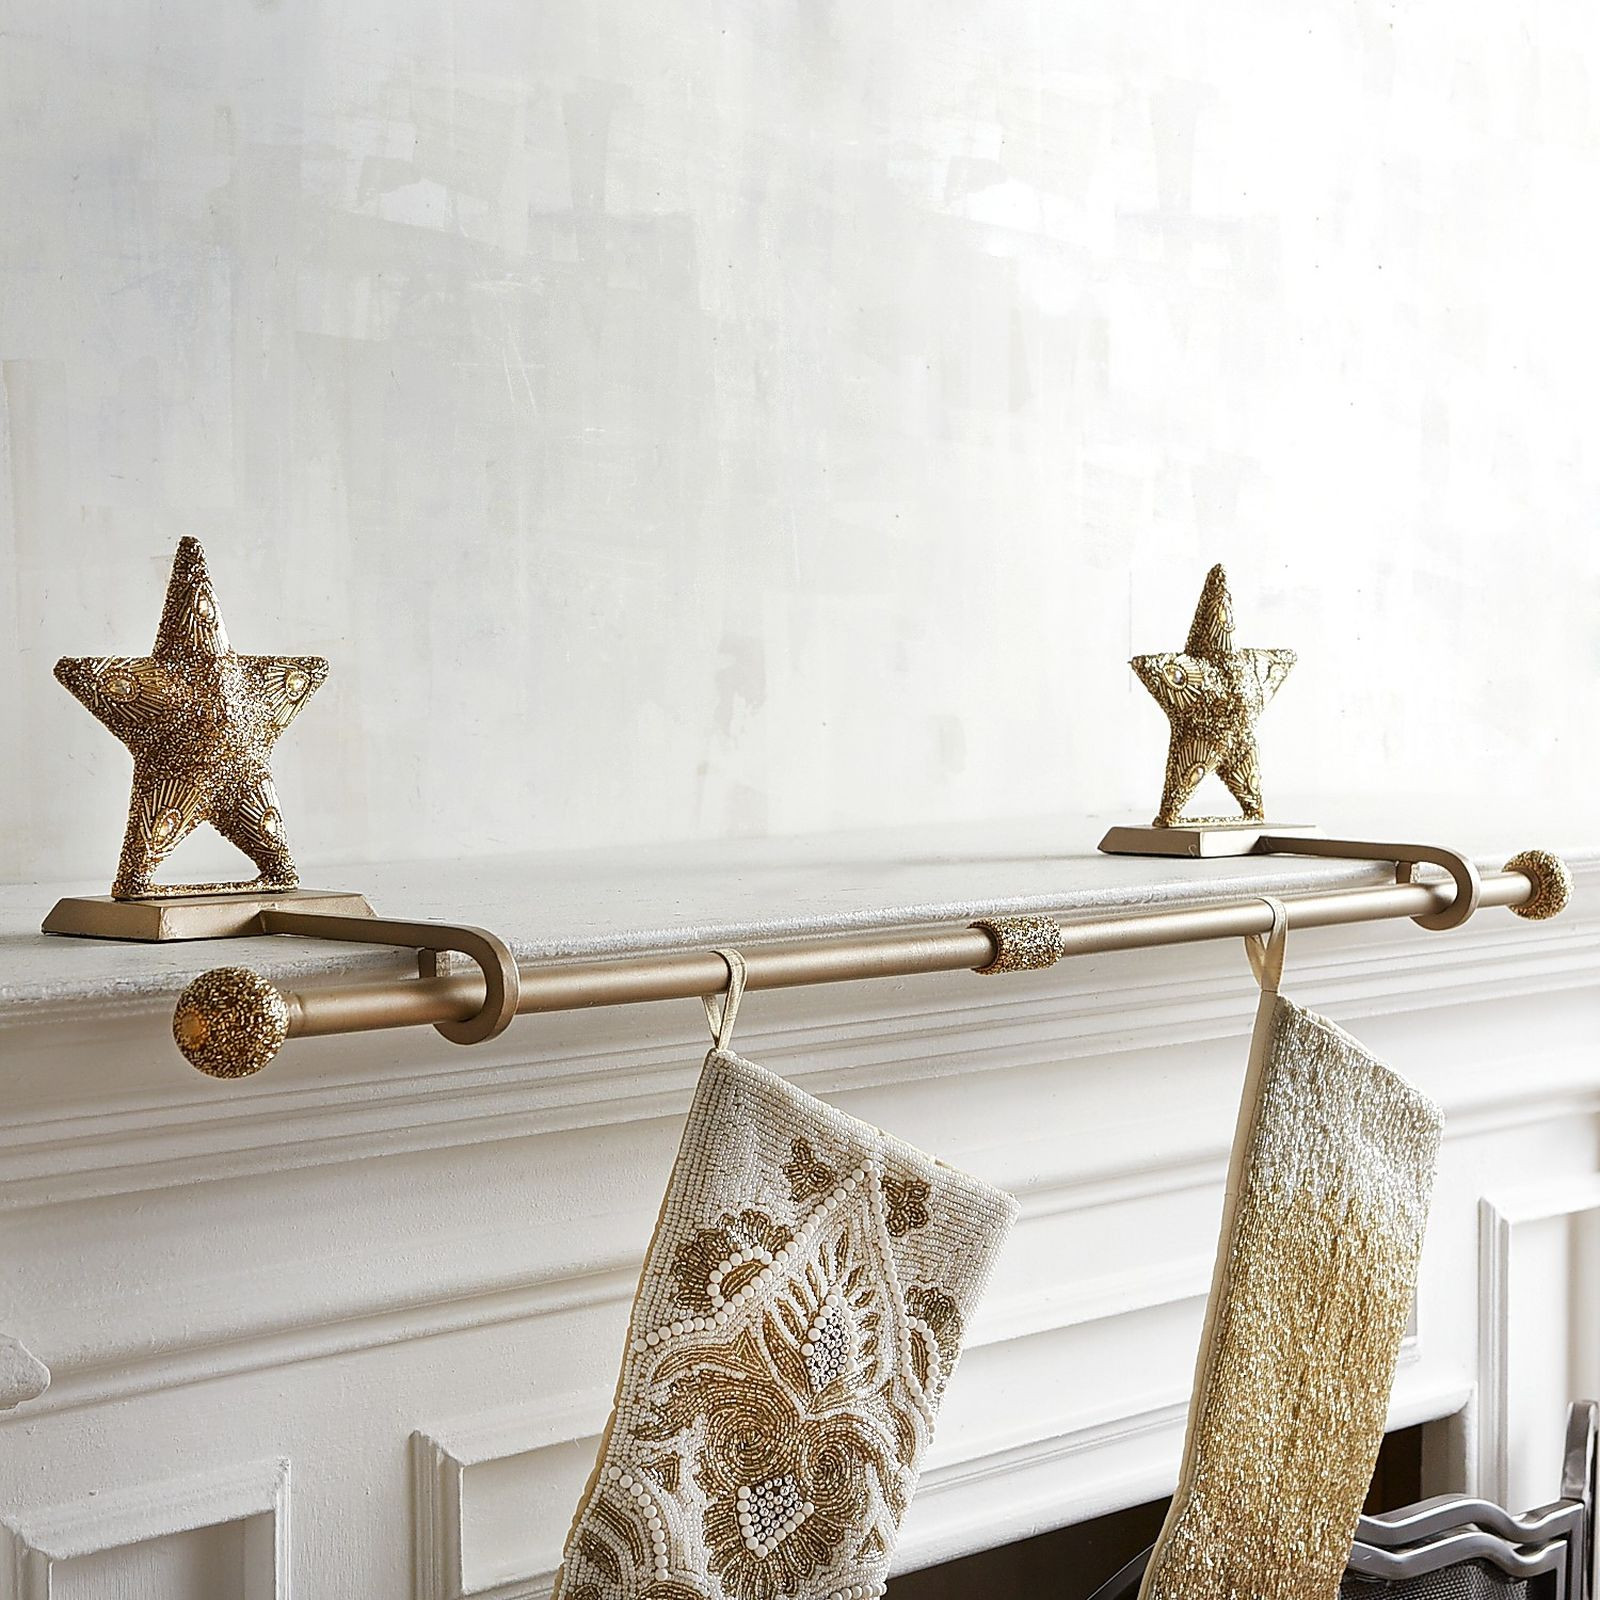 Floor Christmas Stocking Holder  Accessories plete Your Mantel With Exciting Christmas